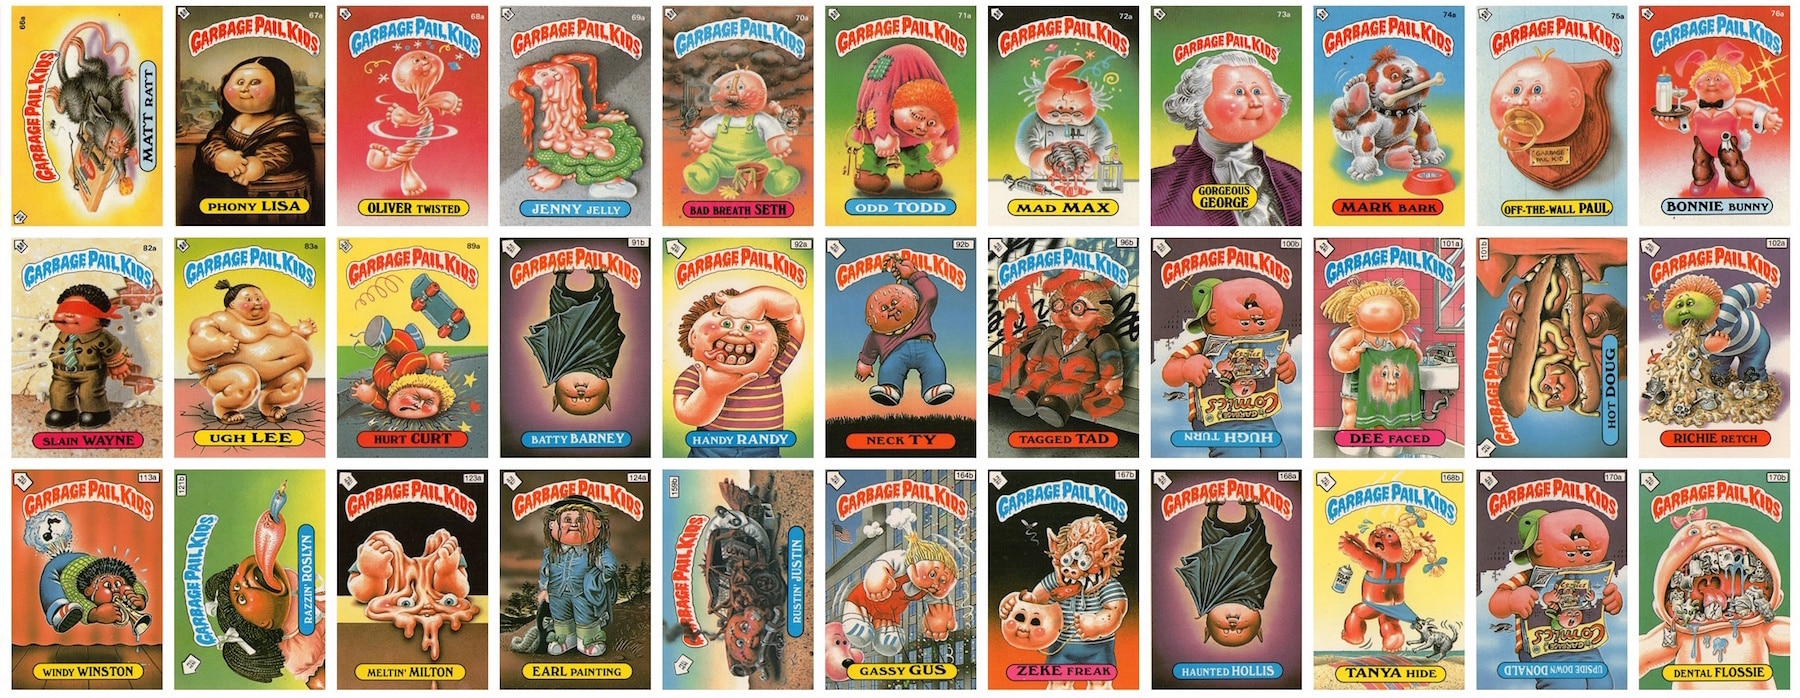 garbagepailkidsbanner - Rest in Peace: Garbage Pail Kids Artist Jay Lynch